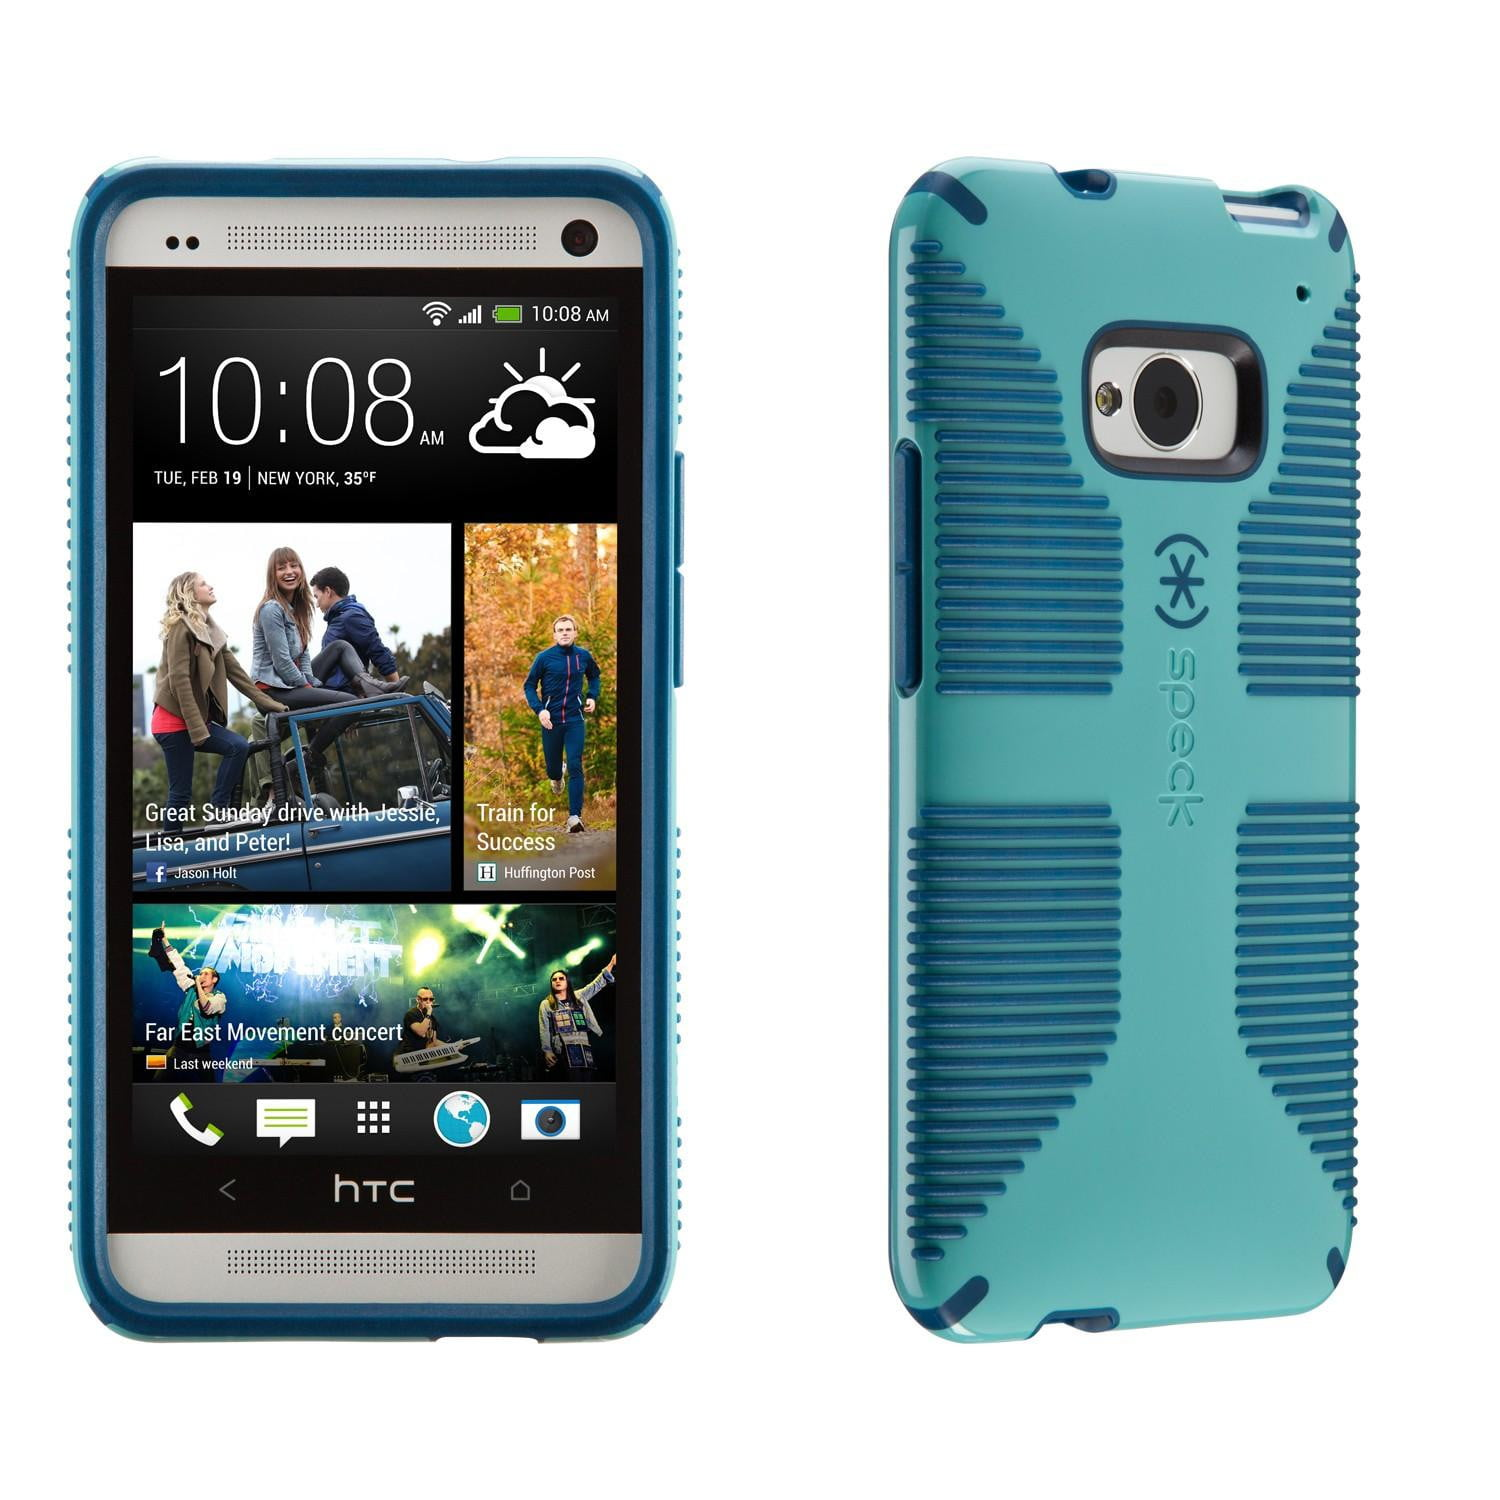 Best HTC One Cases Digital Trends